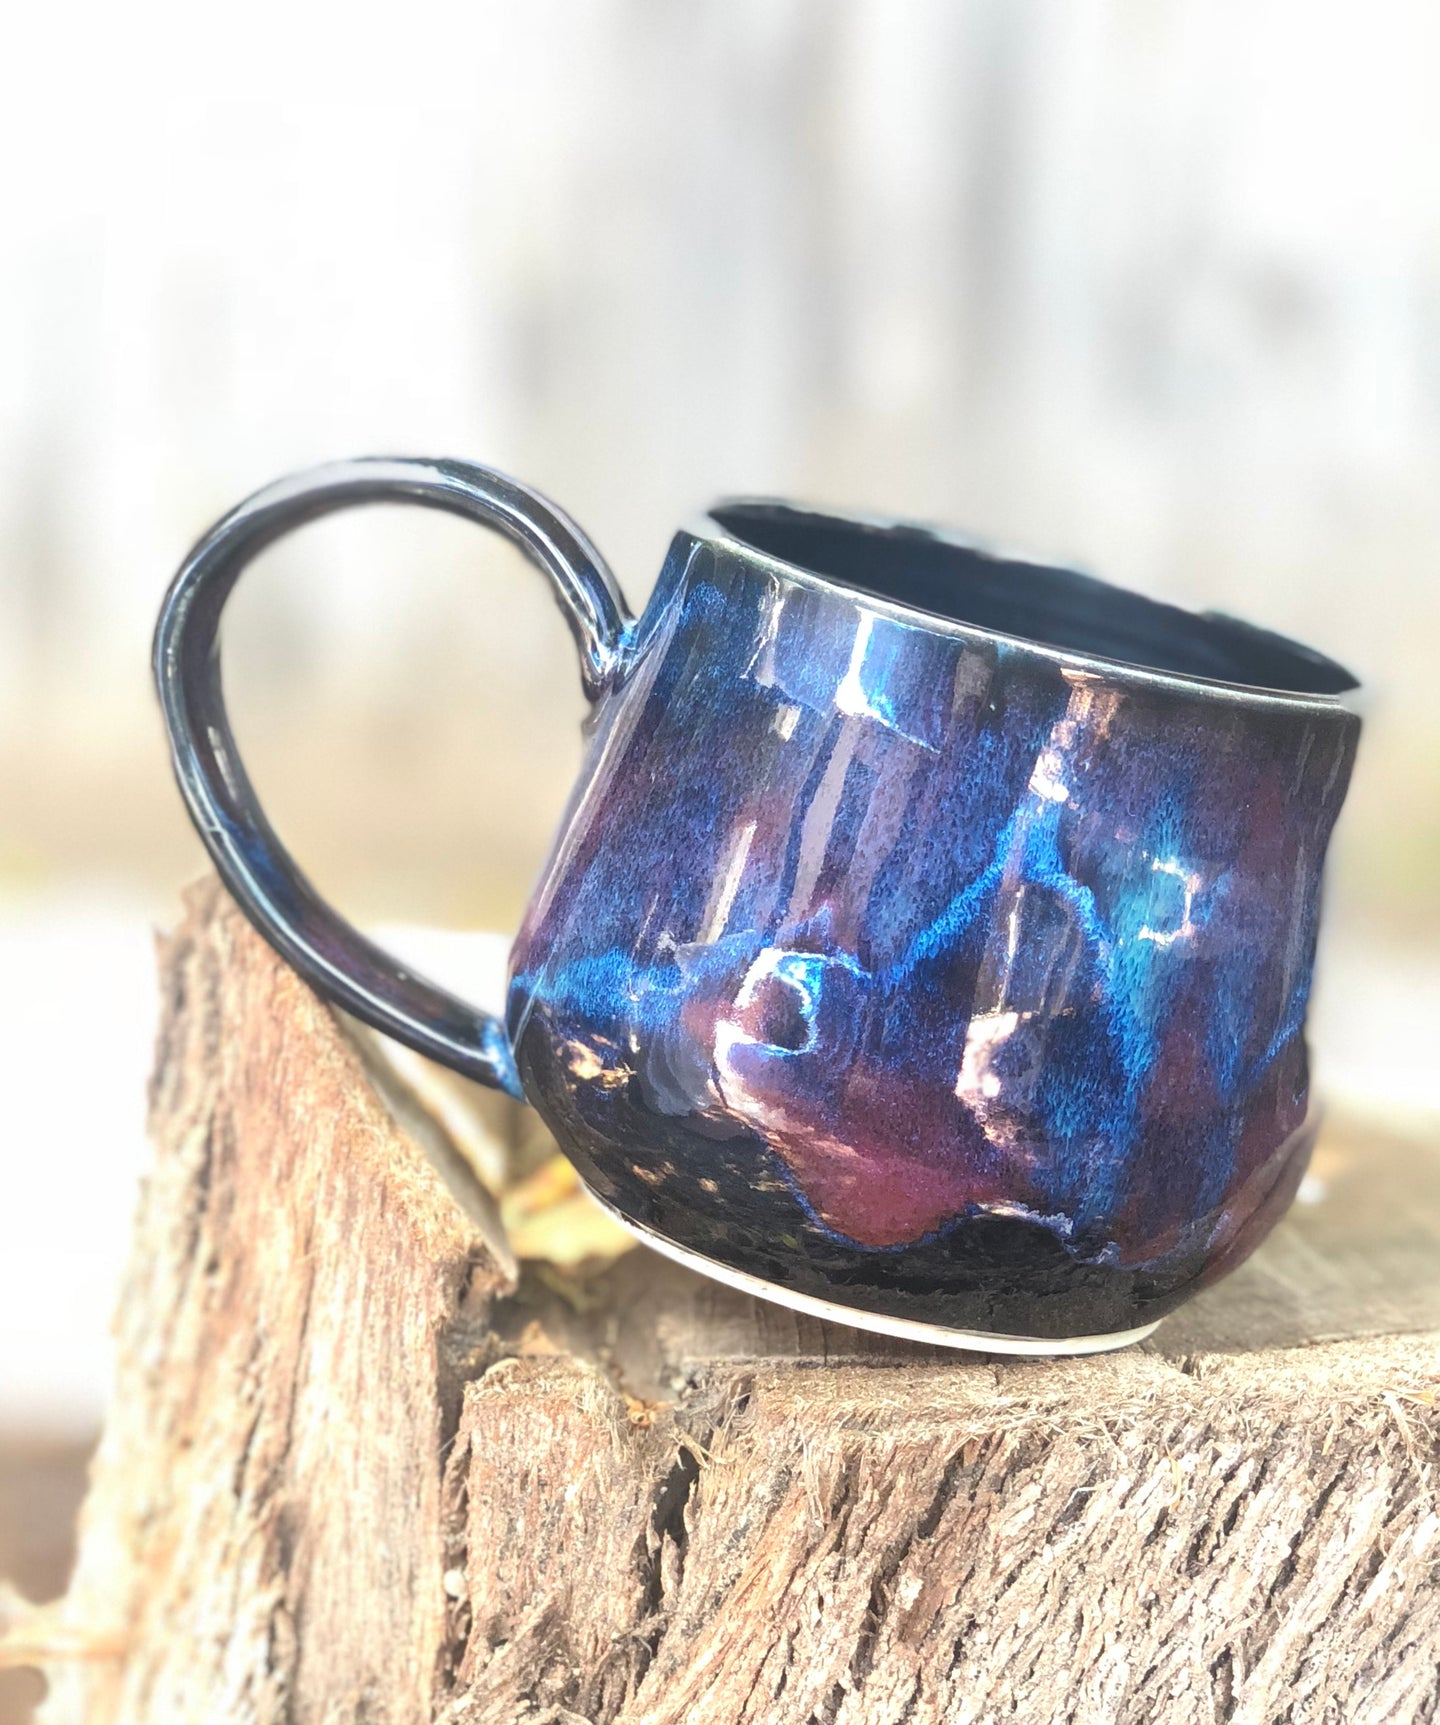 Dark Opal  - Multi Color Ceramic Mug 13 oz - Hsiaowan Studios Handmade Ceramics Pottery